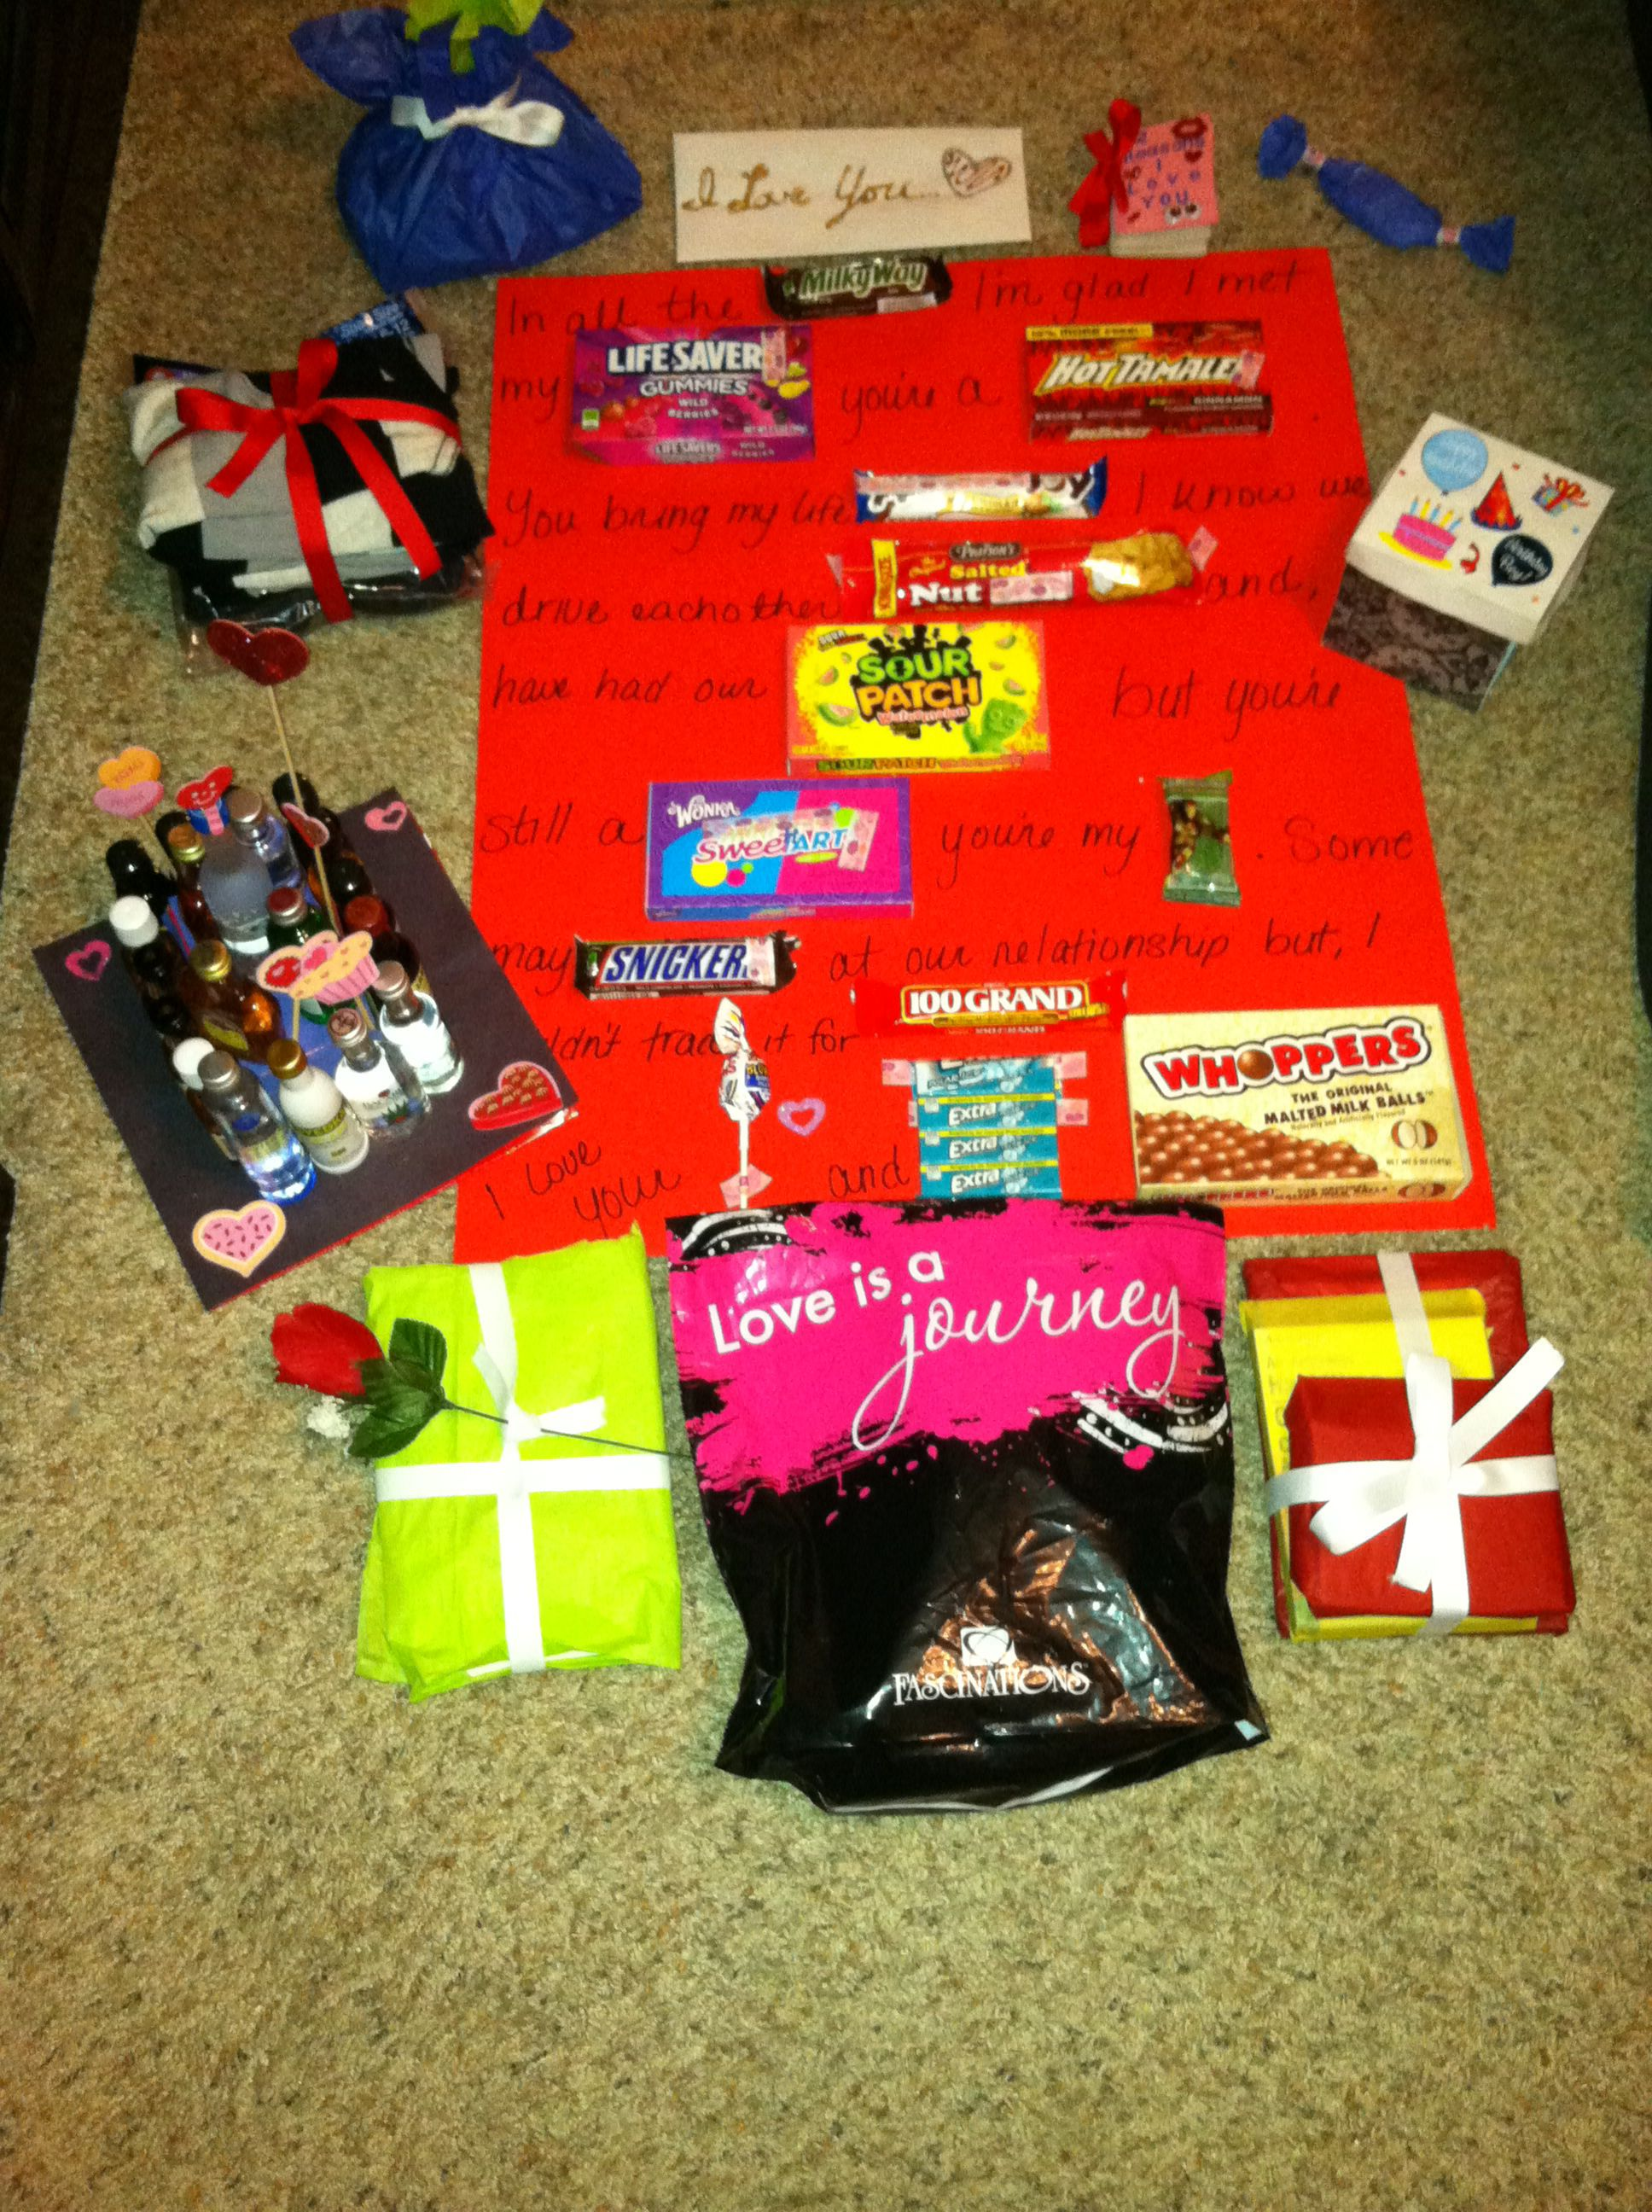 22 Gifts For My Boyfriends 22nd Birthday S2 Things To Do For